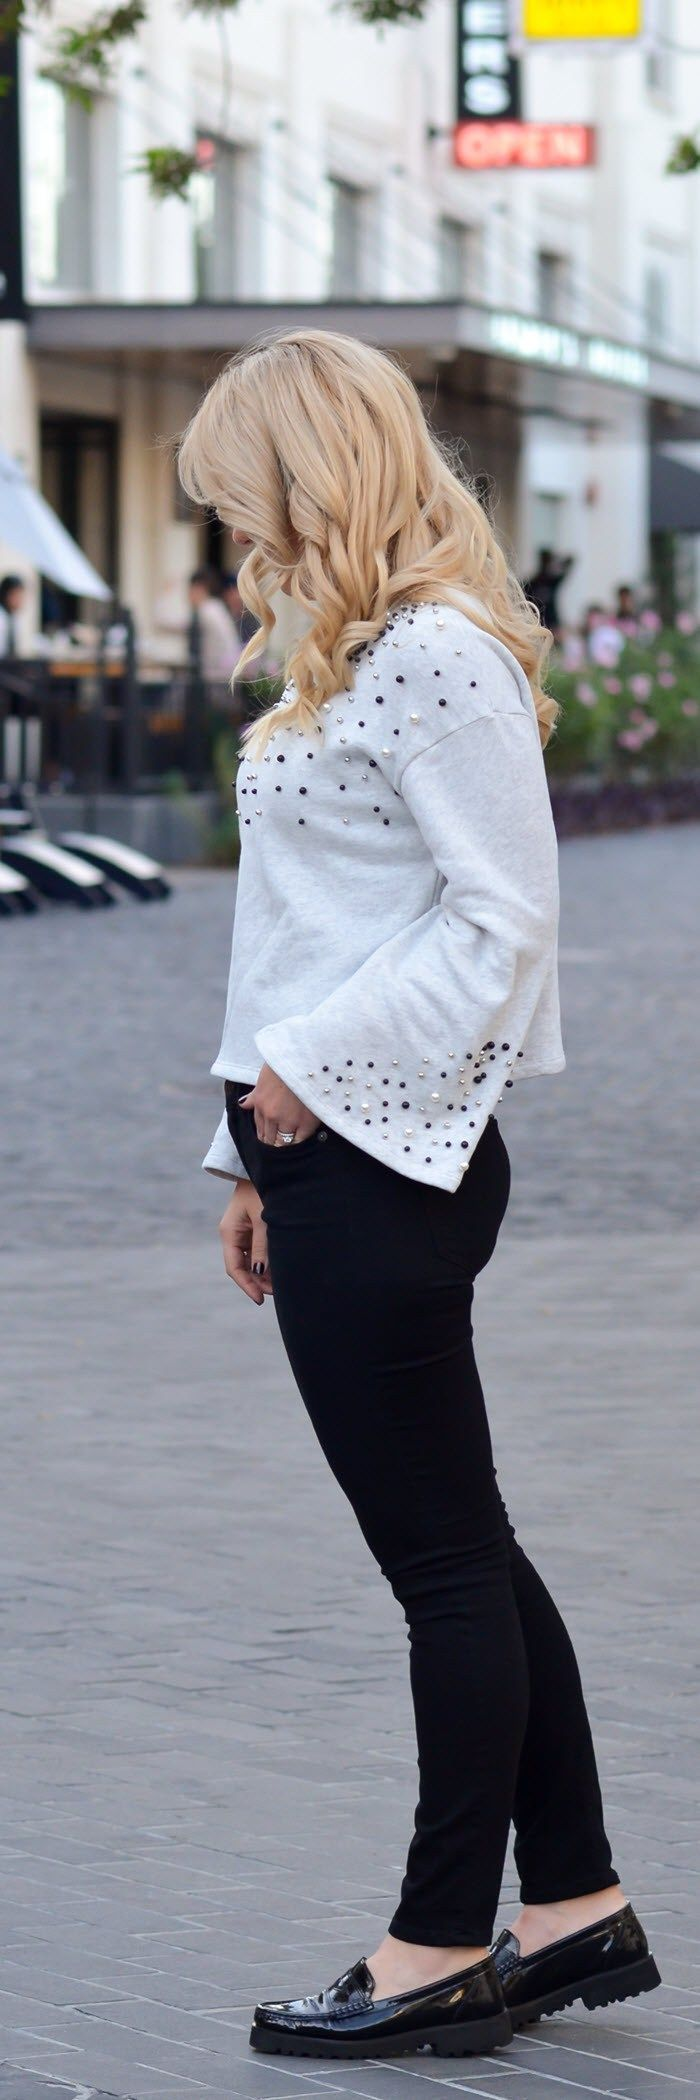 Embellished Bell Sleeve Top Outfit w. Jeans #fashionblog #fashionblogger #fallfashion #bellsleeves #jeans #denimlover #fallstyle #embellished #currentelliott #styleblog #womensfashion #womensstyle #womenover30 #outfitideas #outfitoftheday